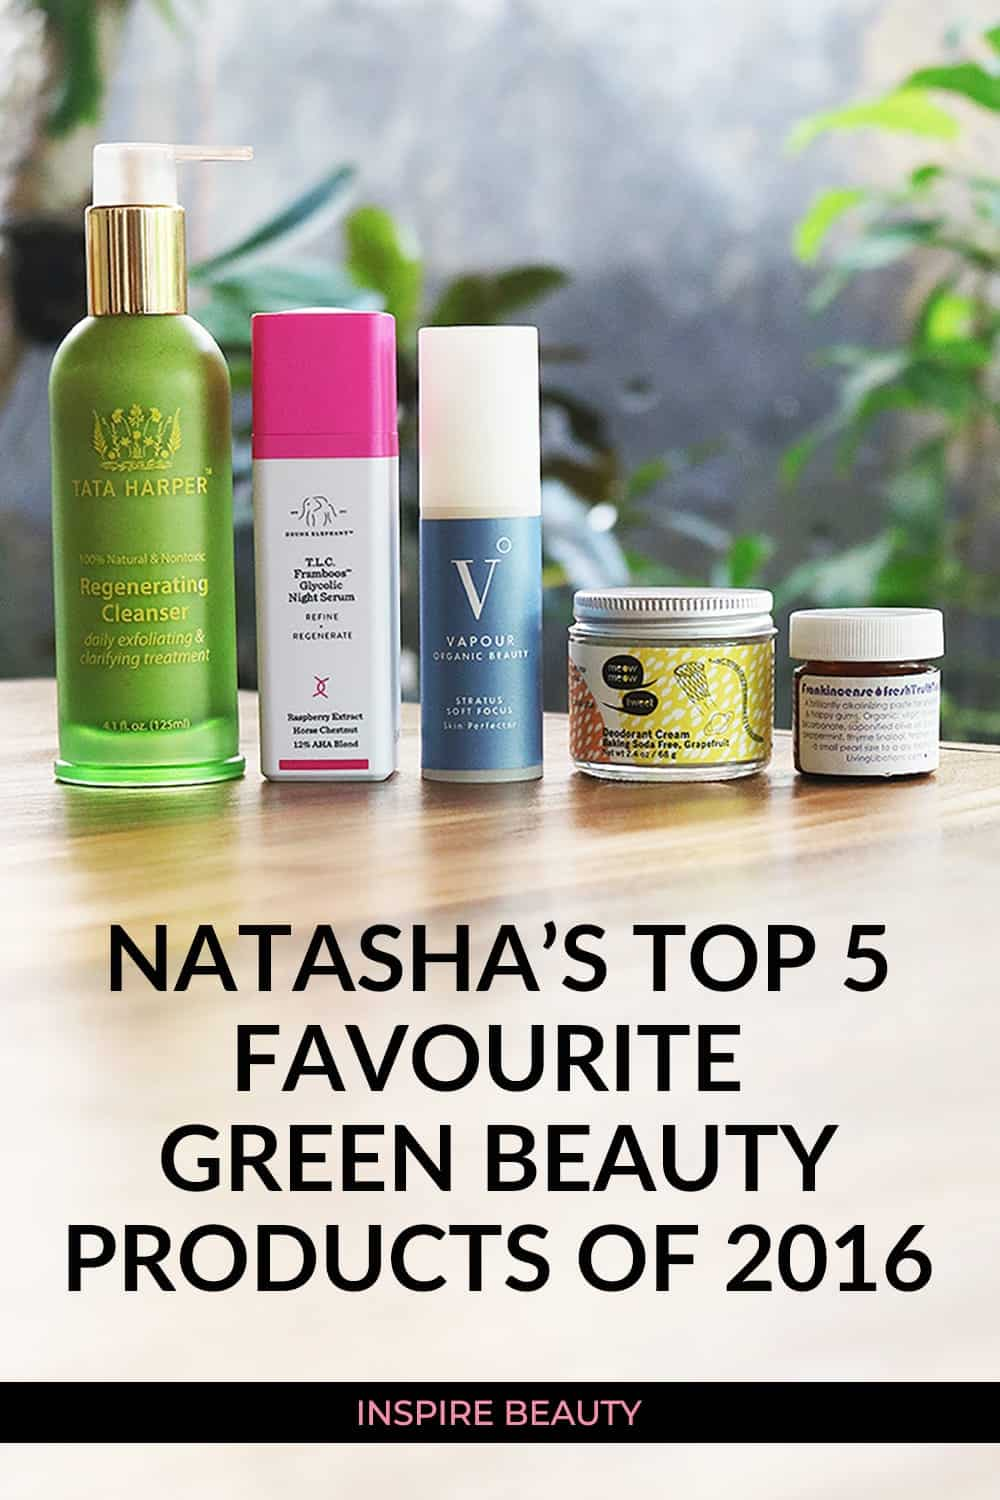 Natasha St. Michael's favourite skincare and body care products for 2016.